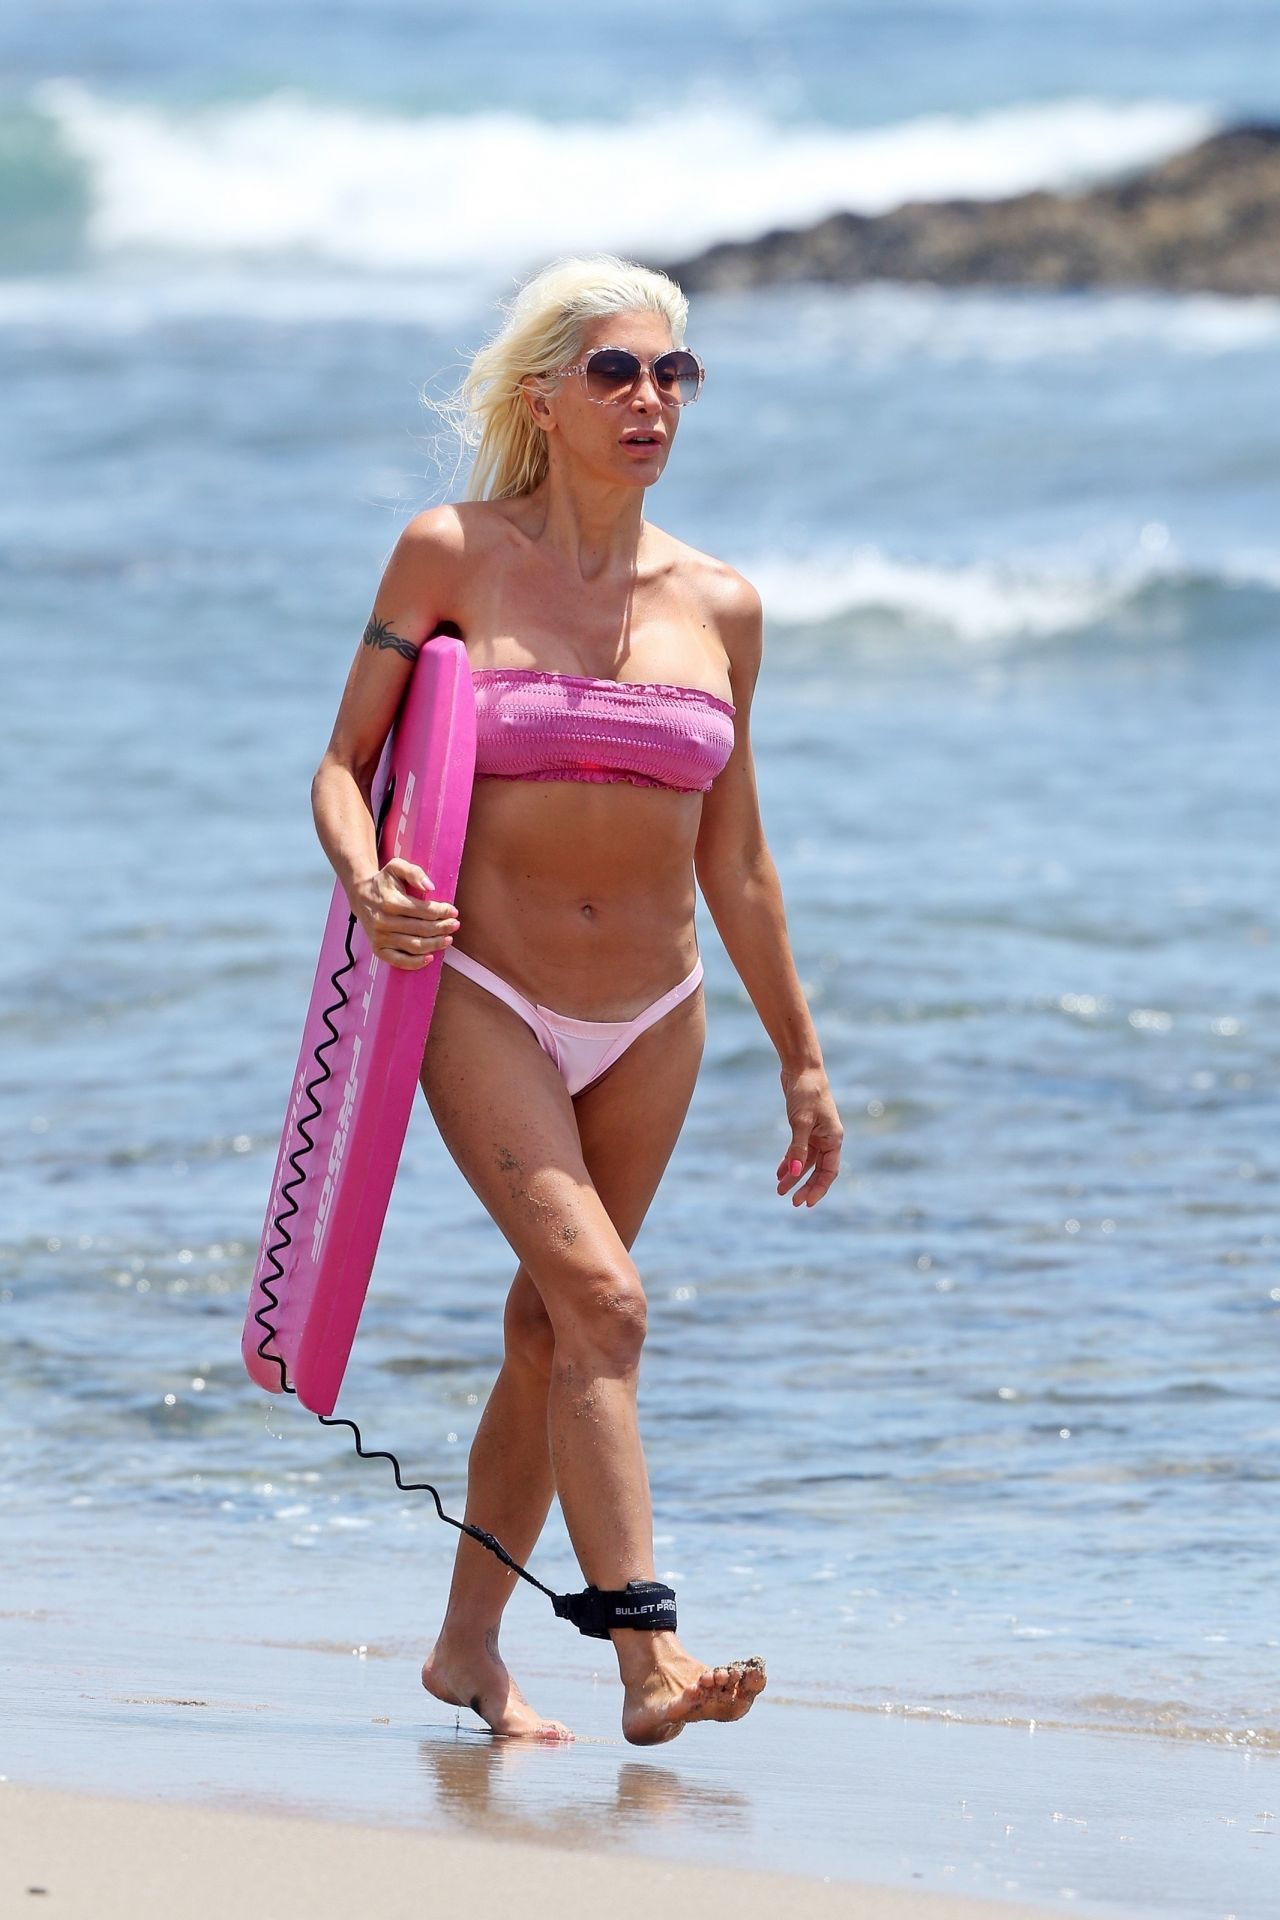 72a24e6005 Angelique Morgan in a Pink Bikini - Malibu Beach 07 06 2017